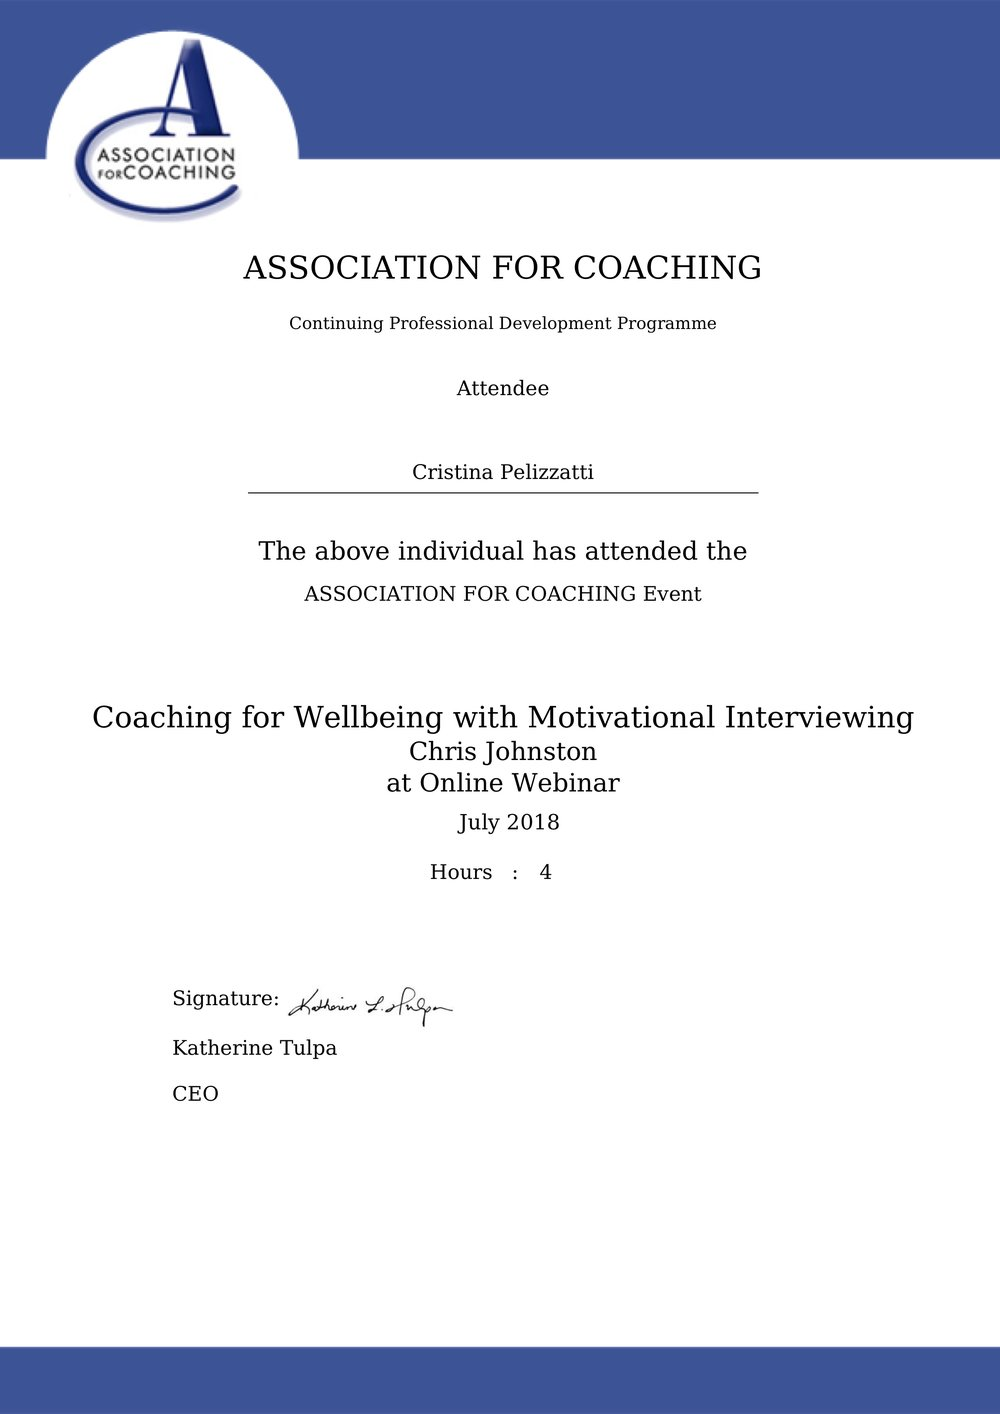 Cristina Pelizzatti - Coaching for Wellbeing with Motivational Interviewing - CPD.jpg